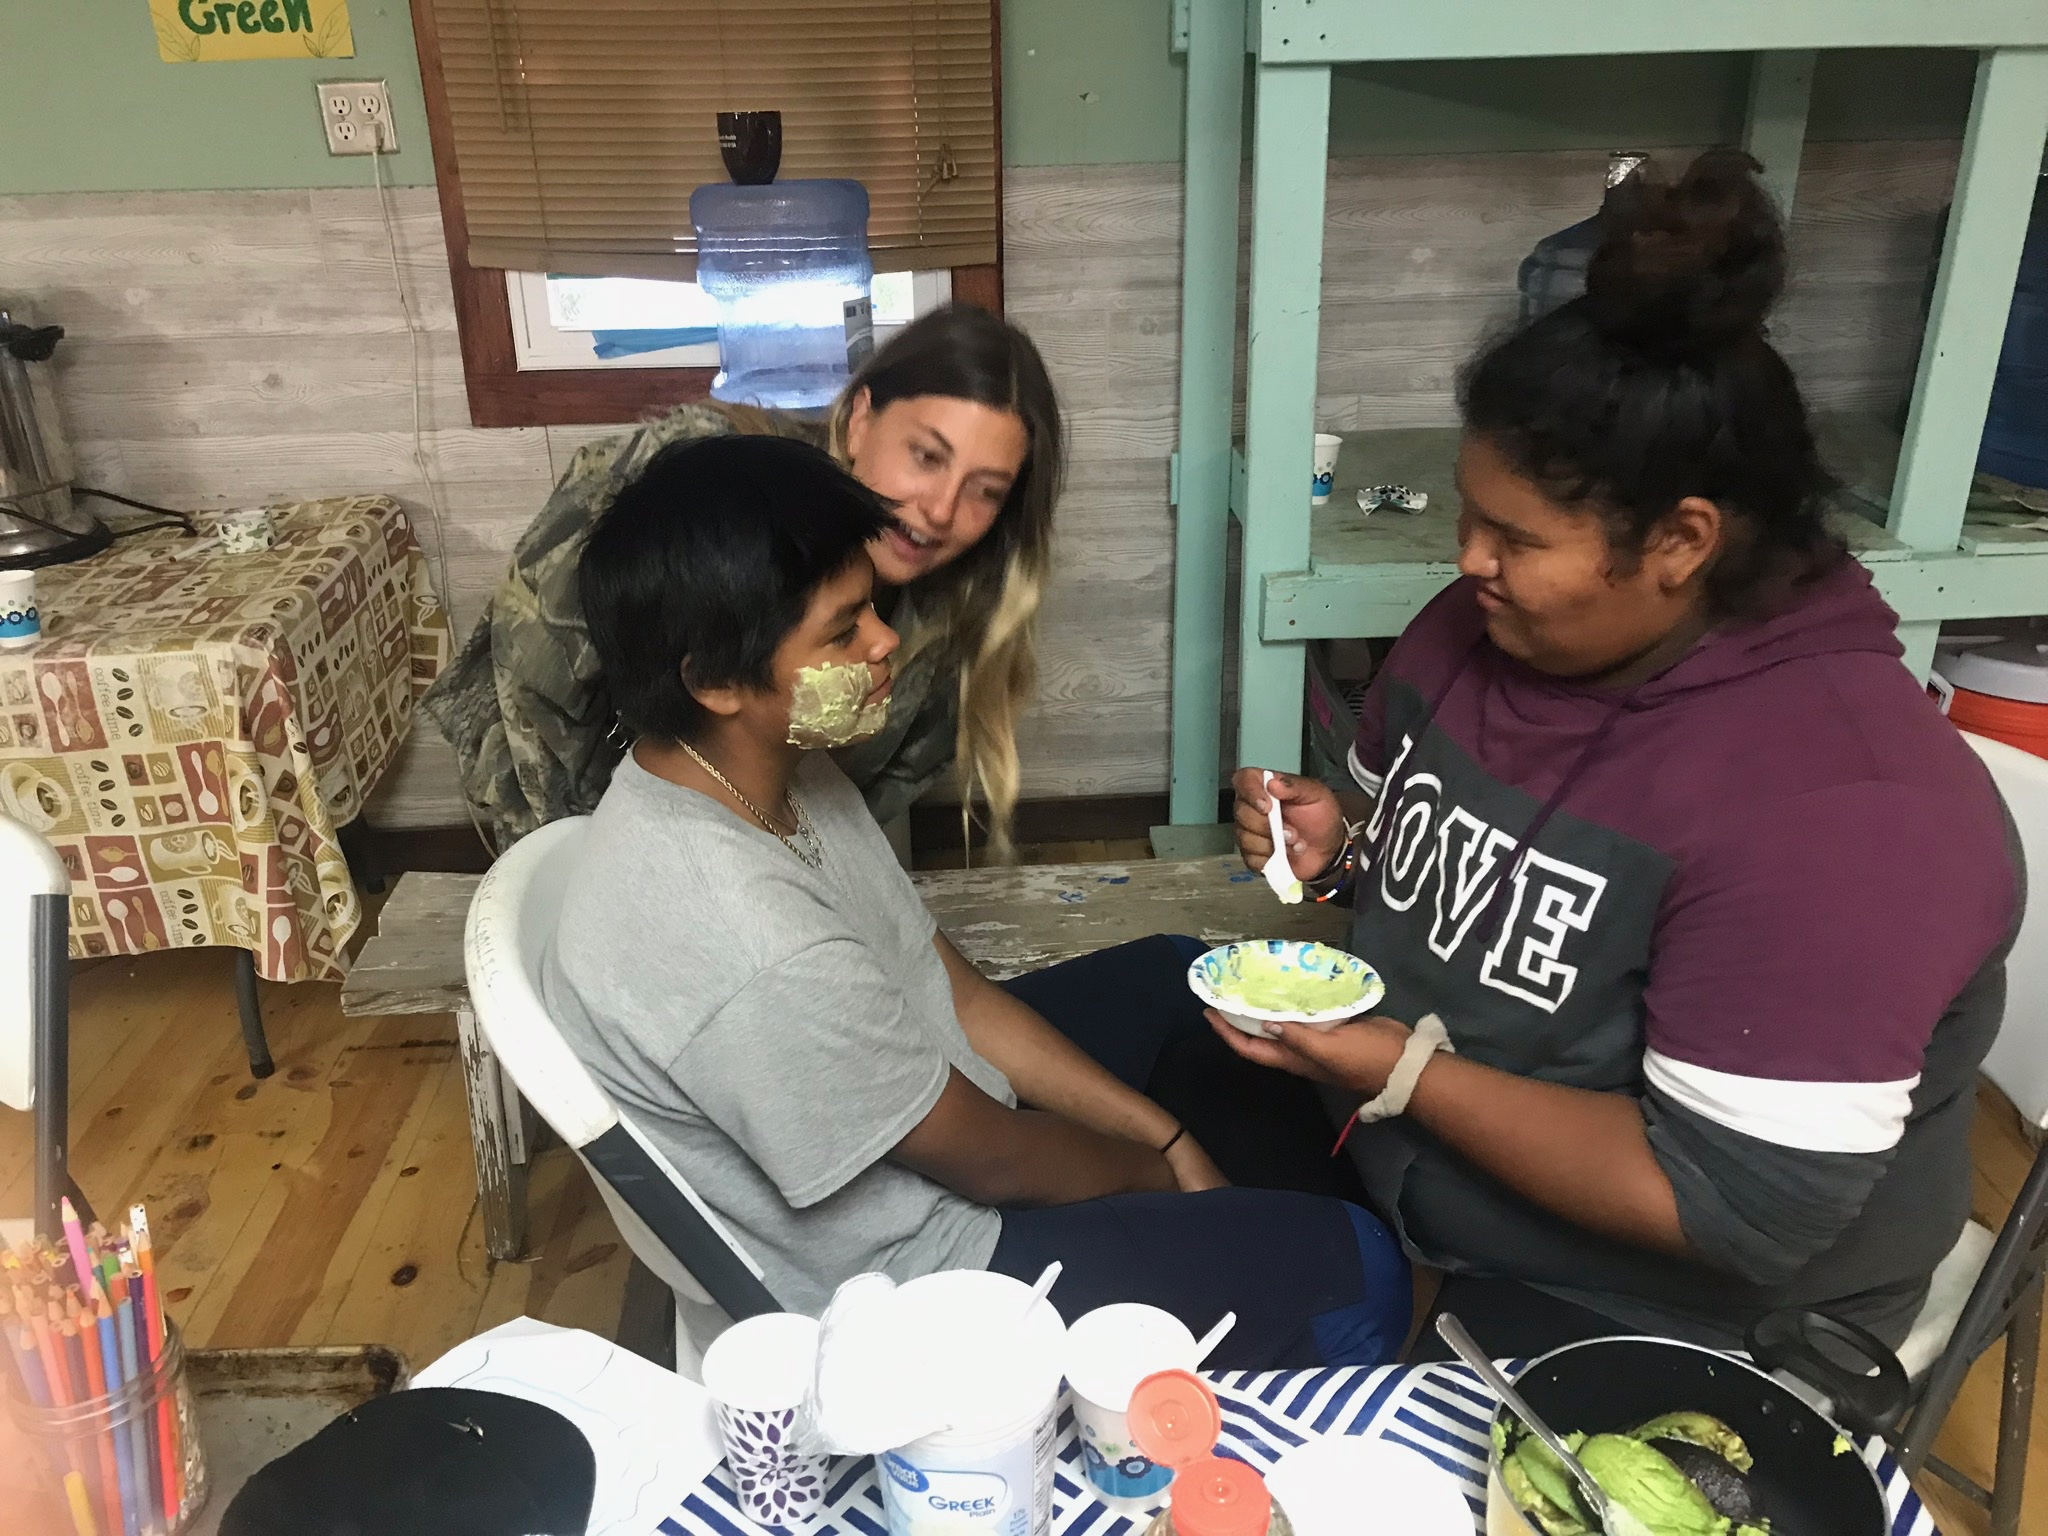 Wellness activities and workshops  allow youth to explore healthy outlets and understand options that are available to them to maintain  physical, emotional and mental wellness !